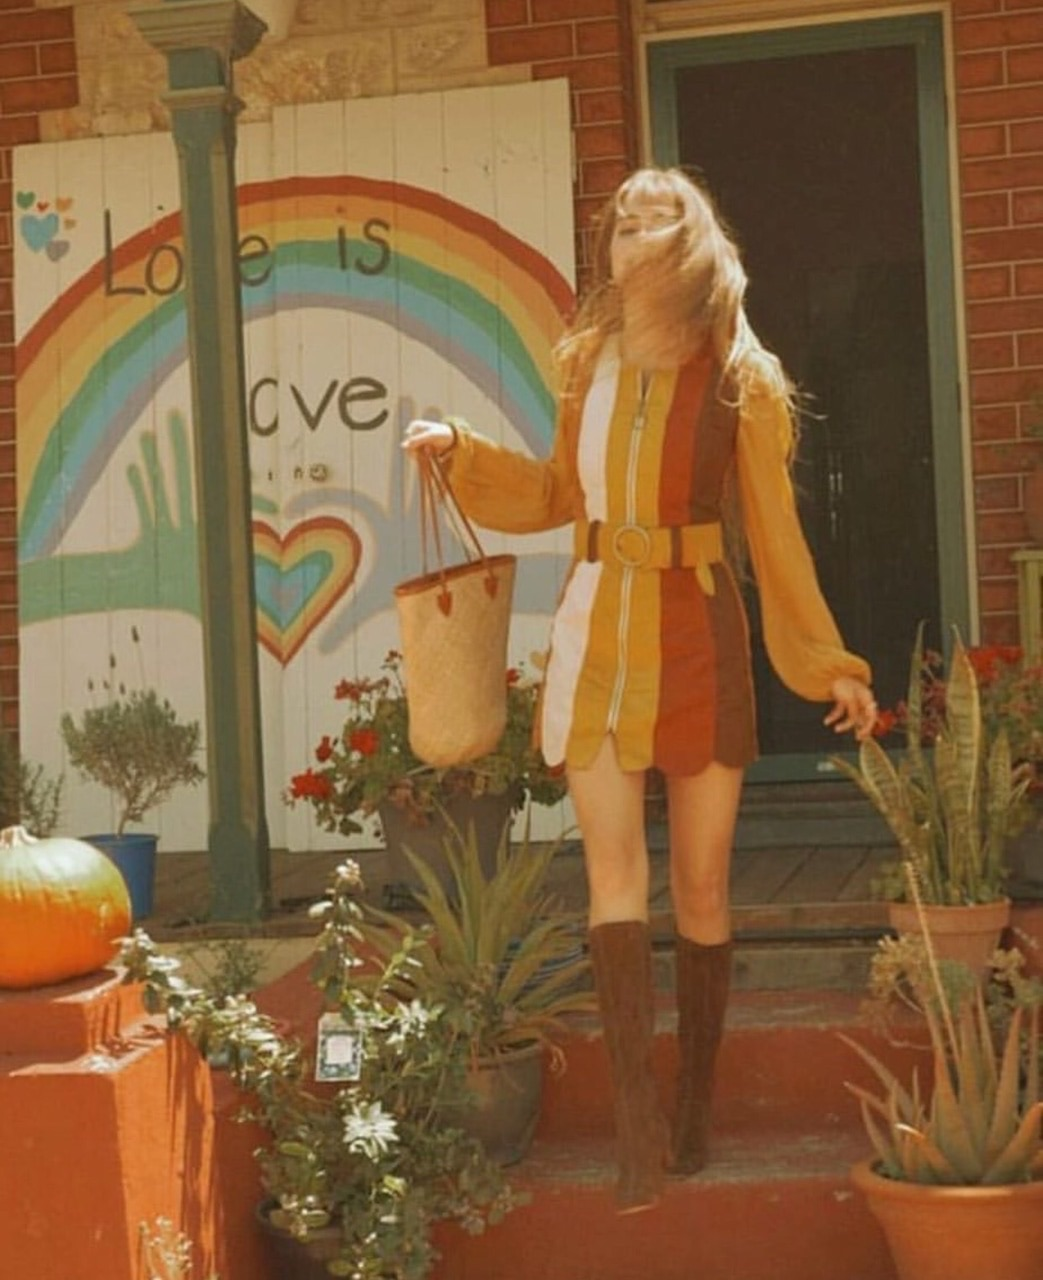 70s, aesthetic, and vintage image